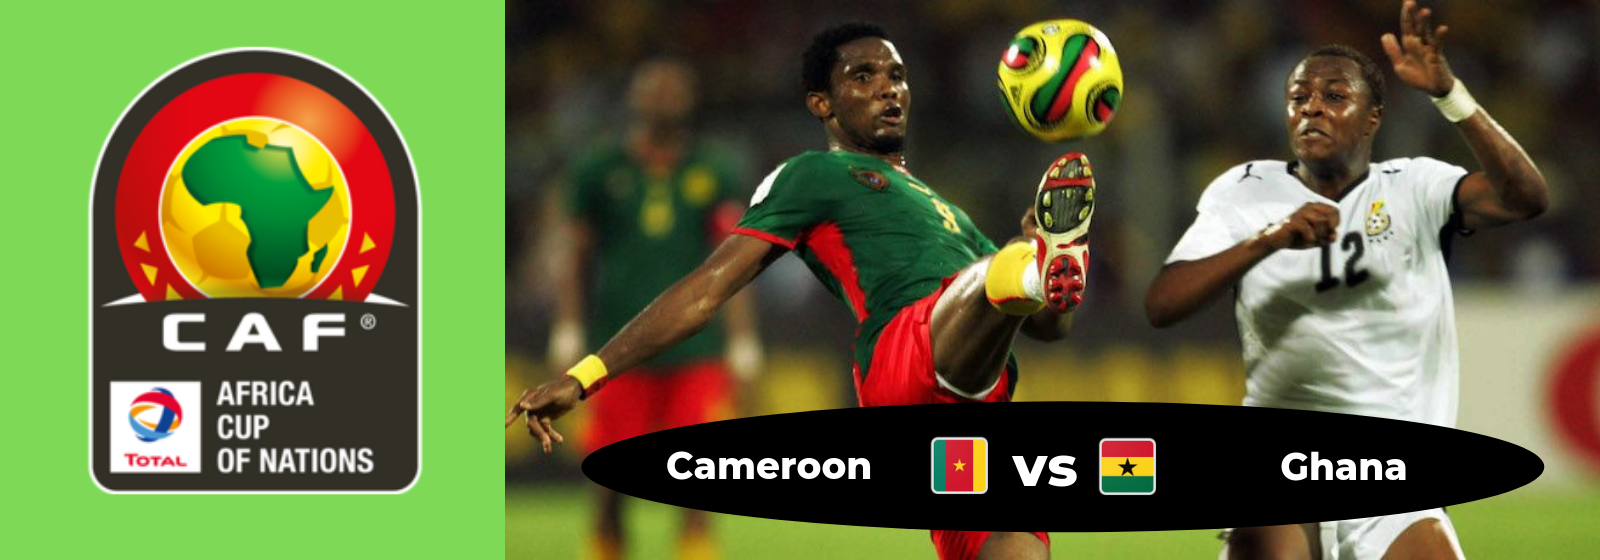 Africa Cup of Nations Cameroon Vs. Ghana Asian Connect